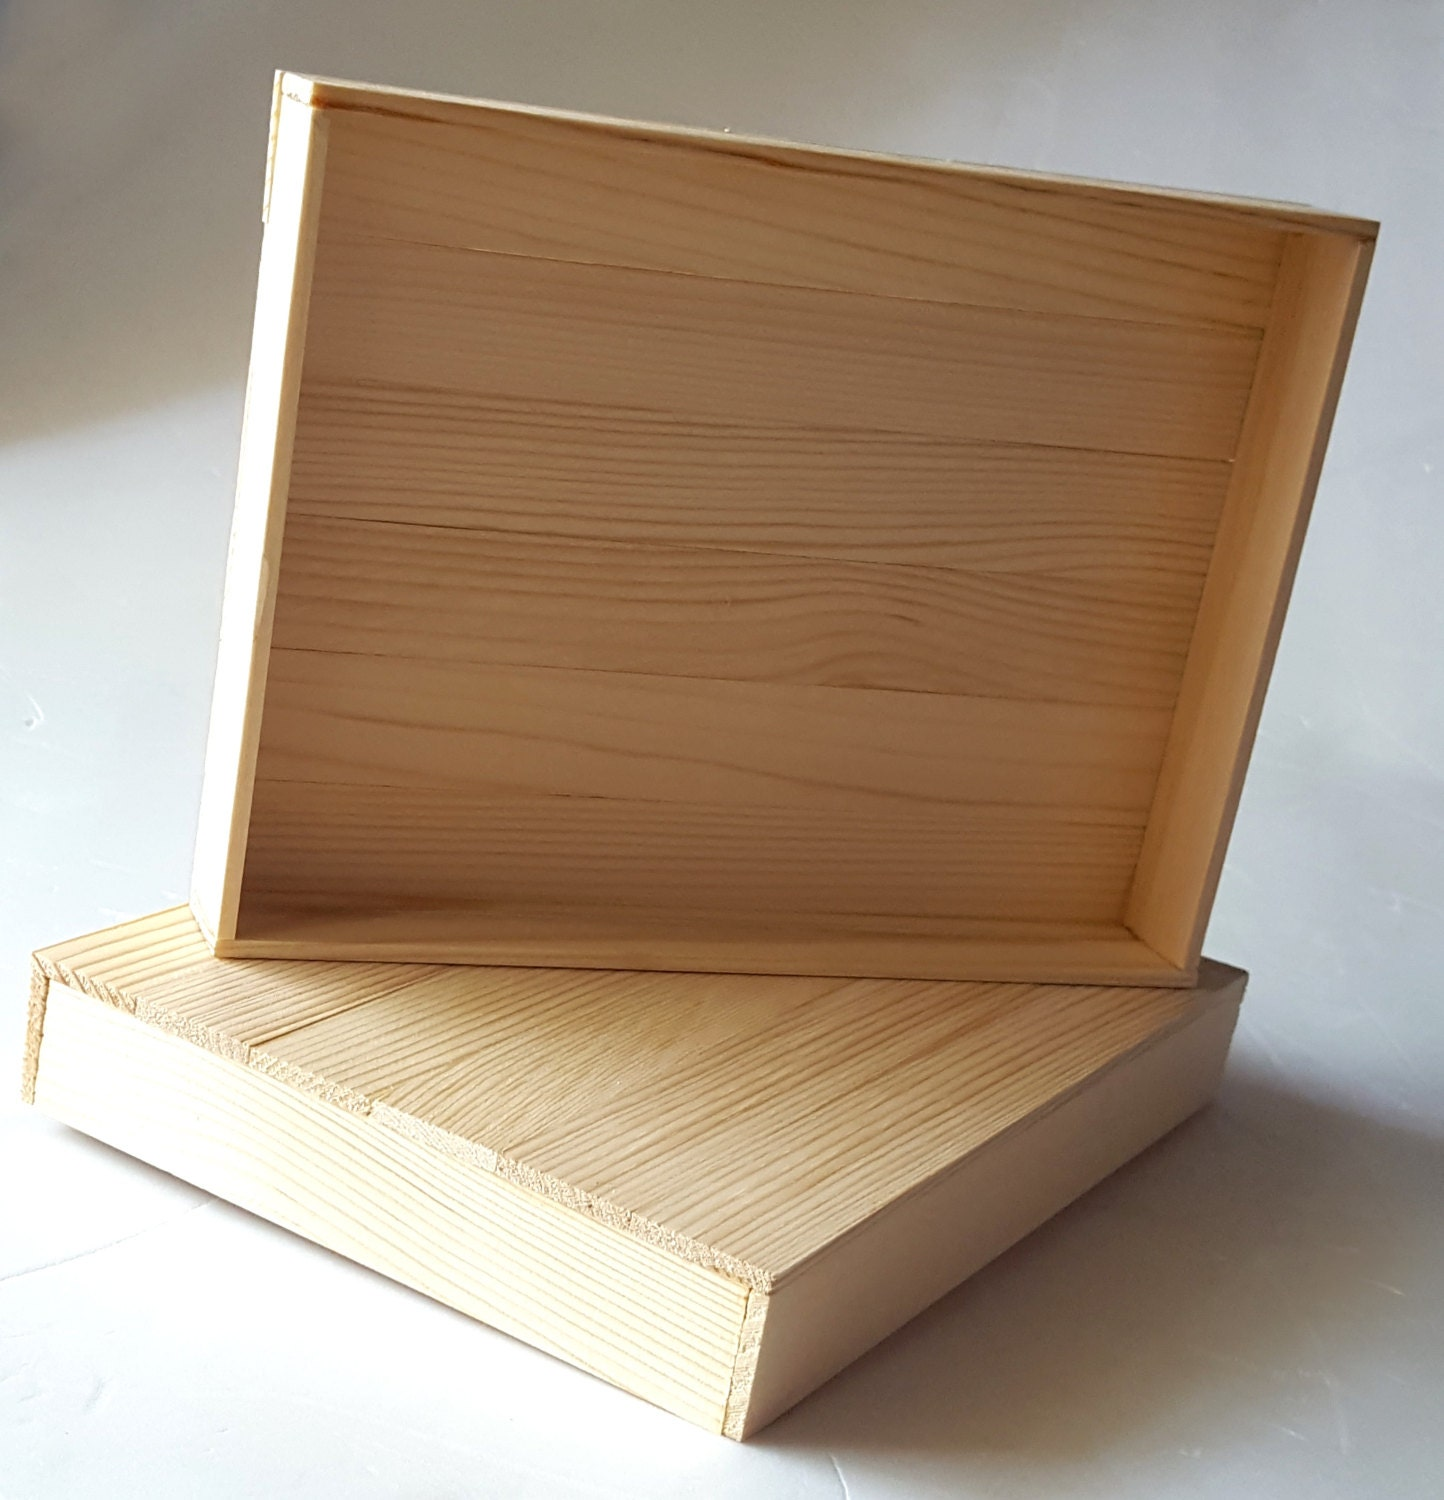 Unfinished wood craft products -  6 50